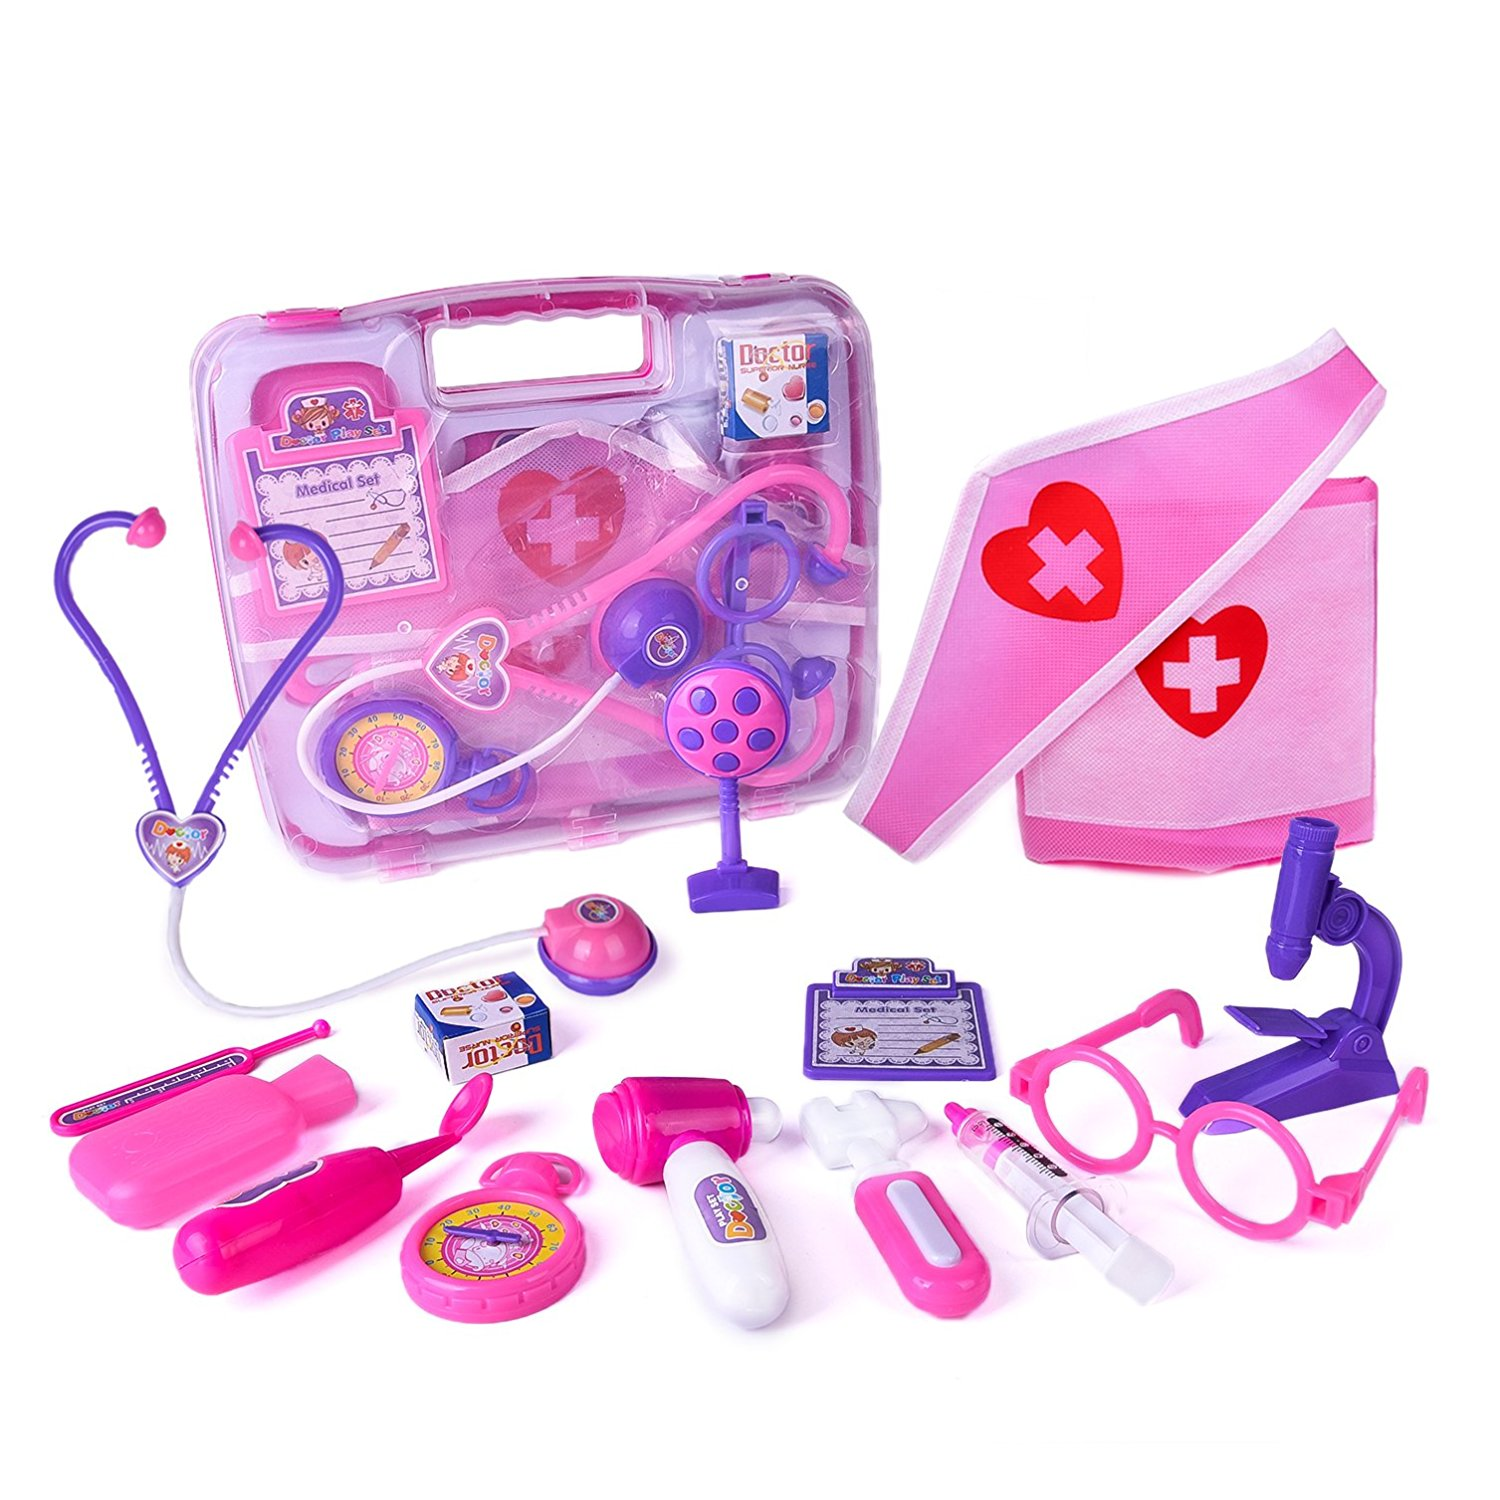 Doctor Nurse Medical Kit Assorted Pink Pretend Role Play Educational Playset With Durable Box for Birthday Gifts 15 PCs F-16